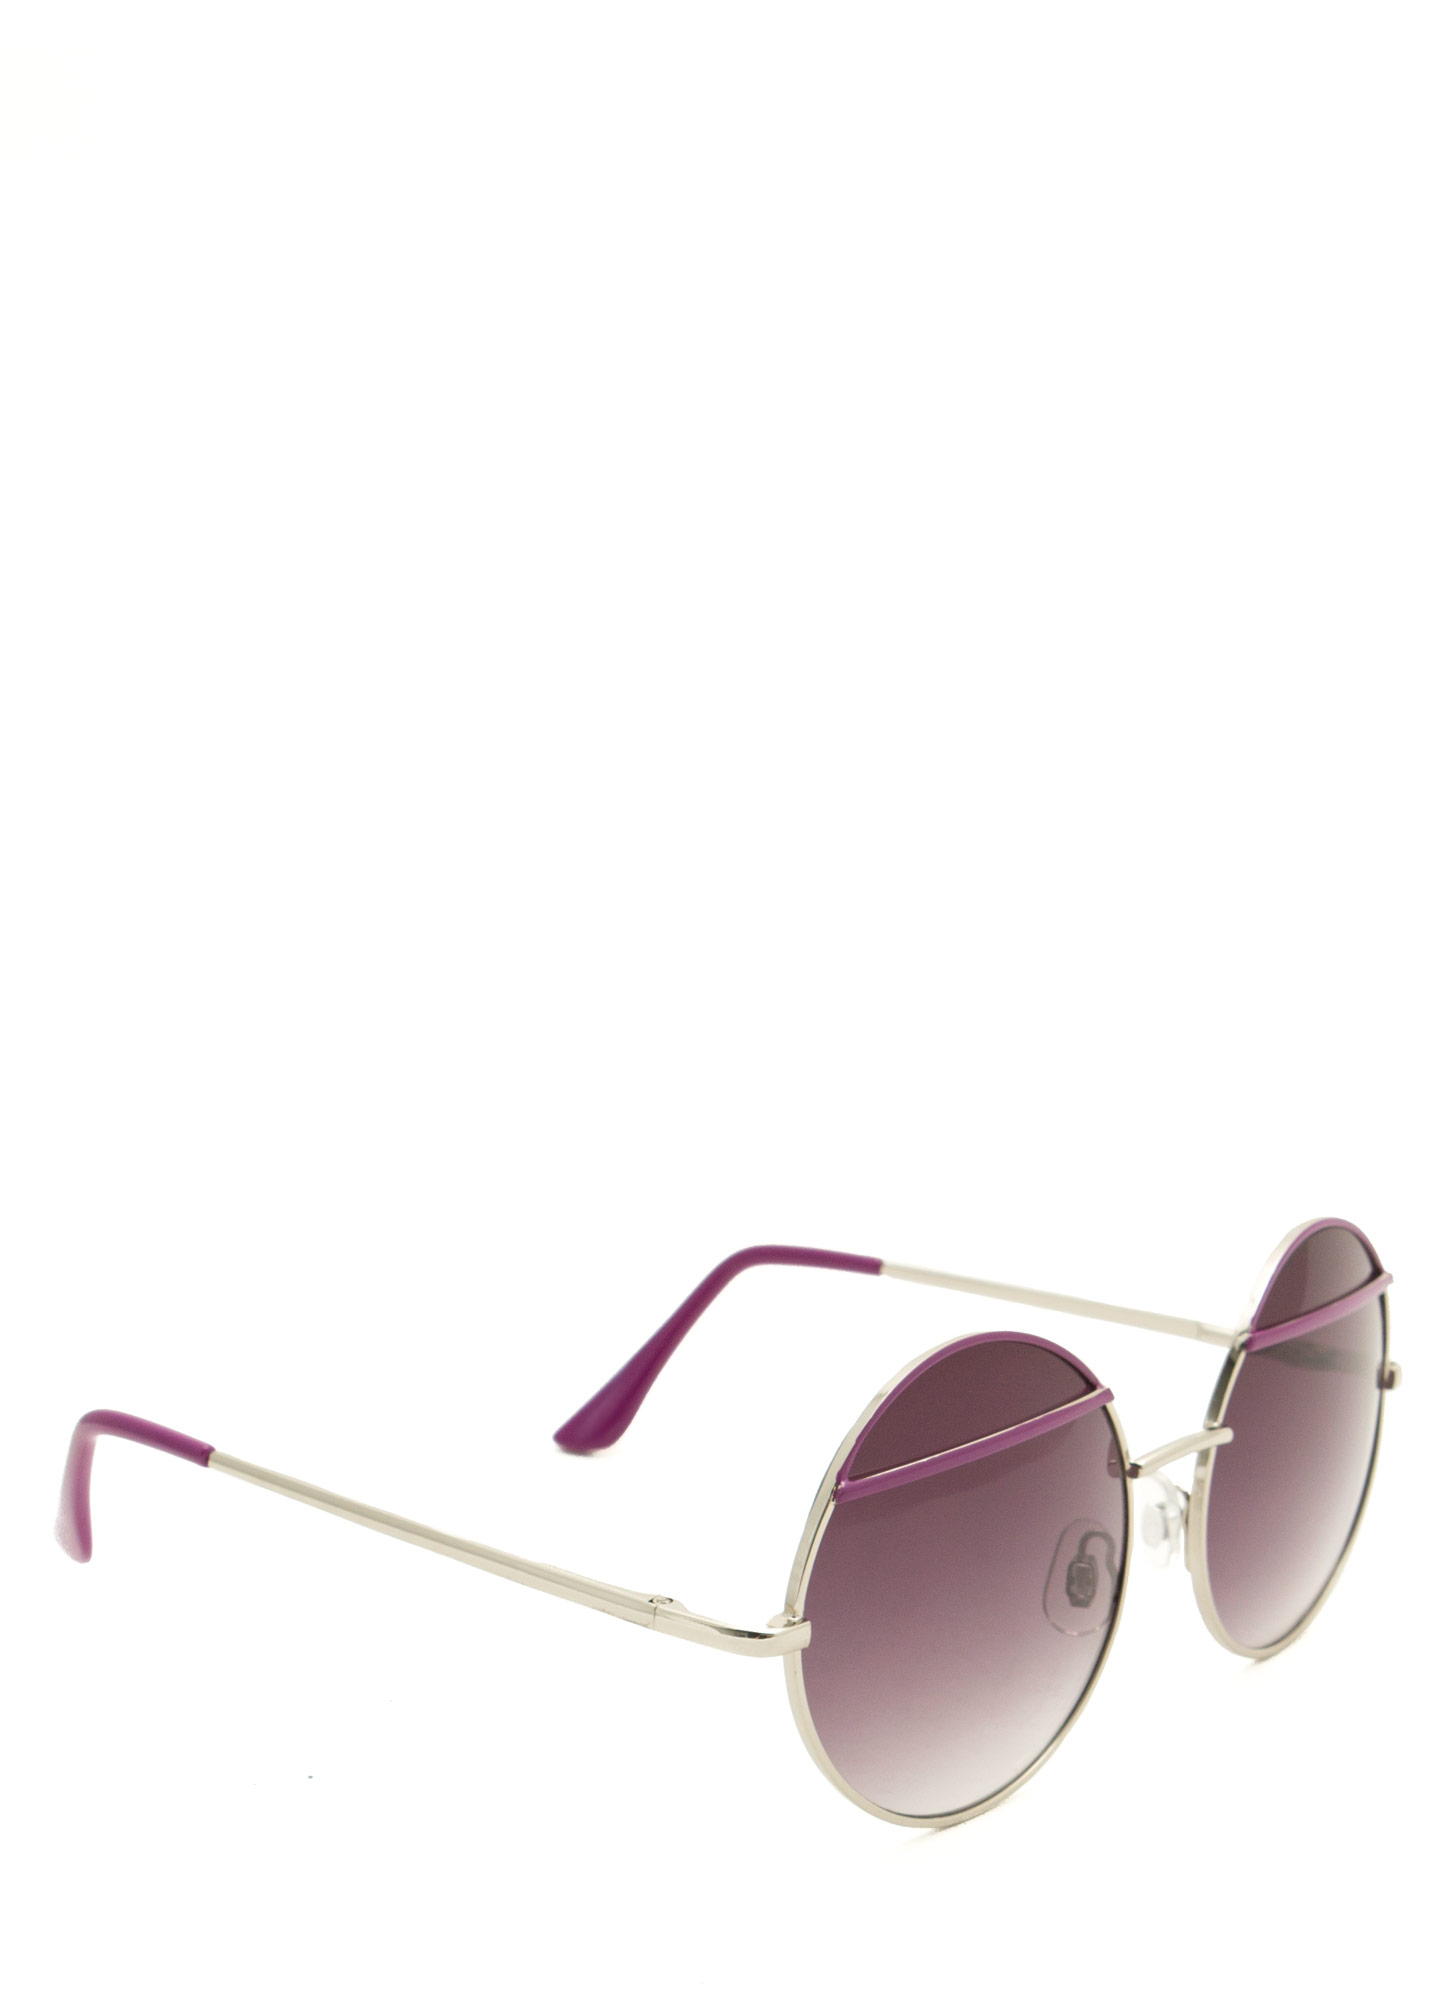 Bar Topped Round Sunglasses PURPLE